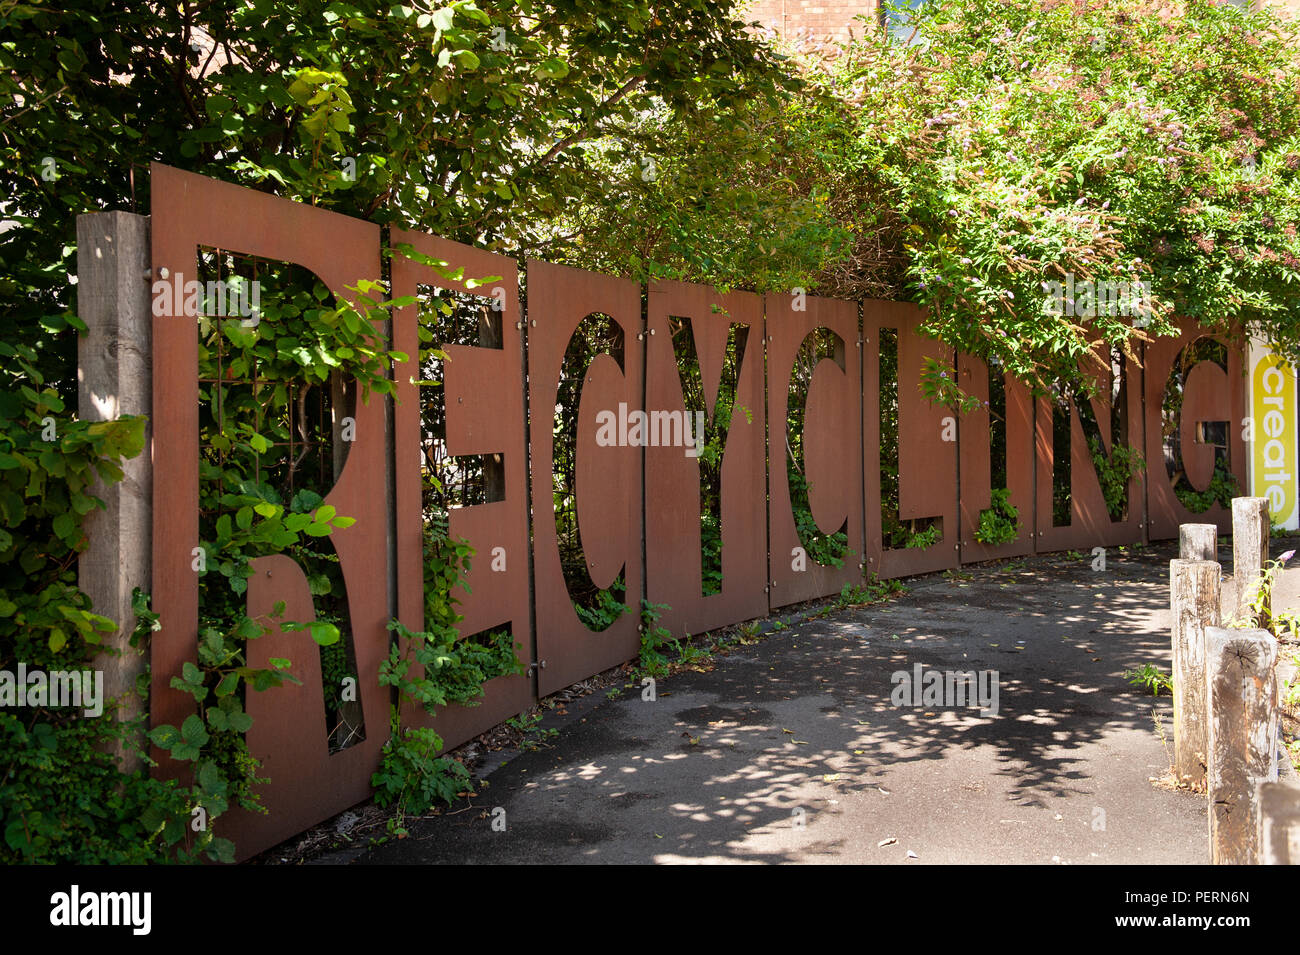 Large 'Recycling' sign at Create in Bristol, UK - Stock Image